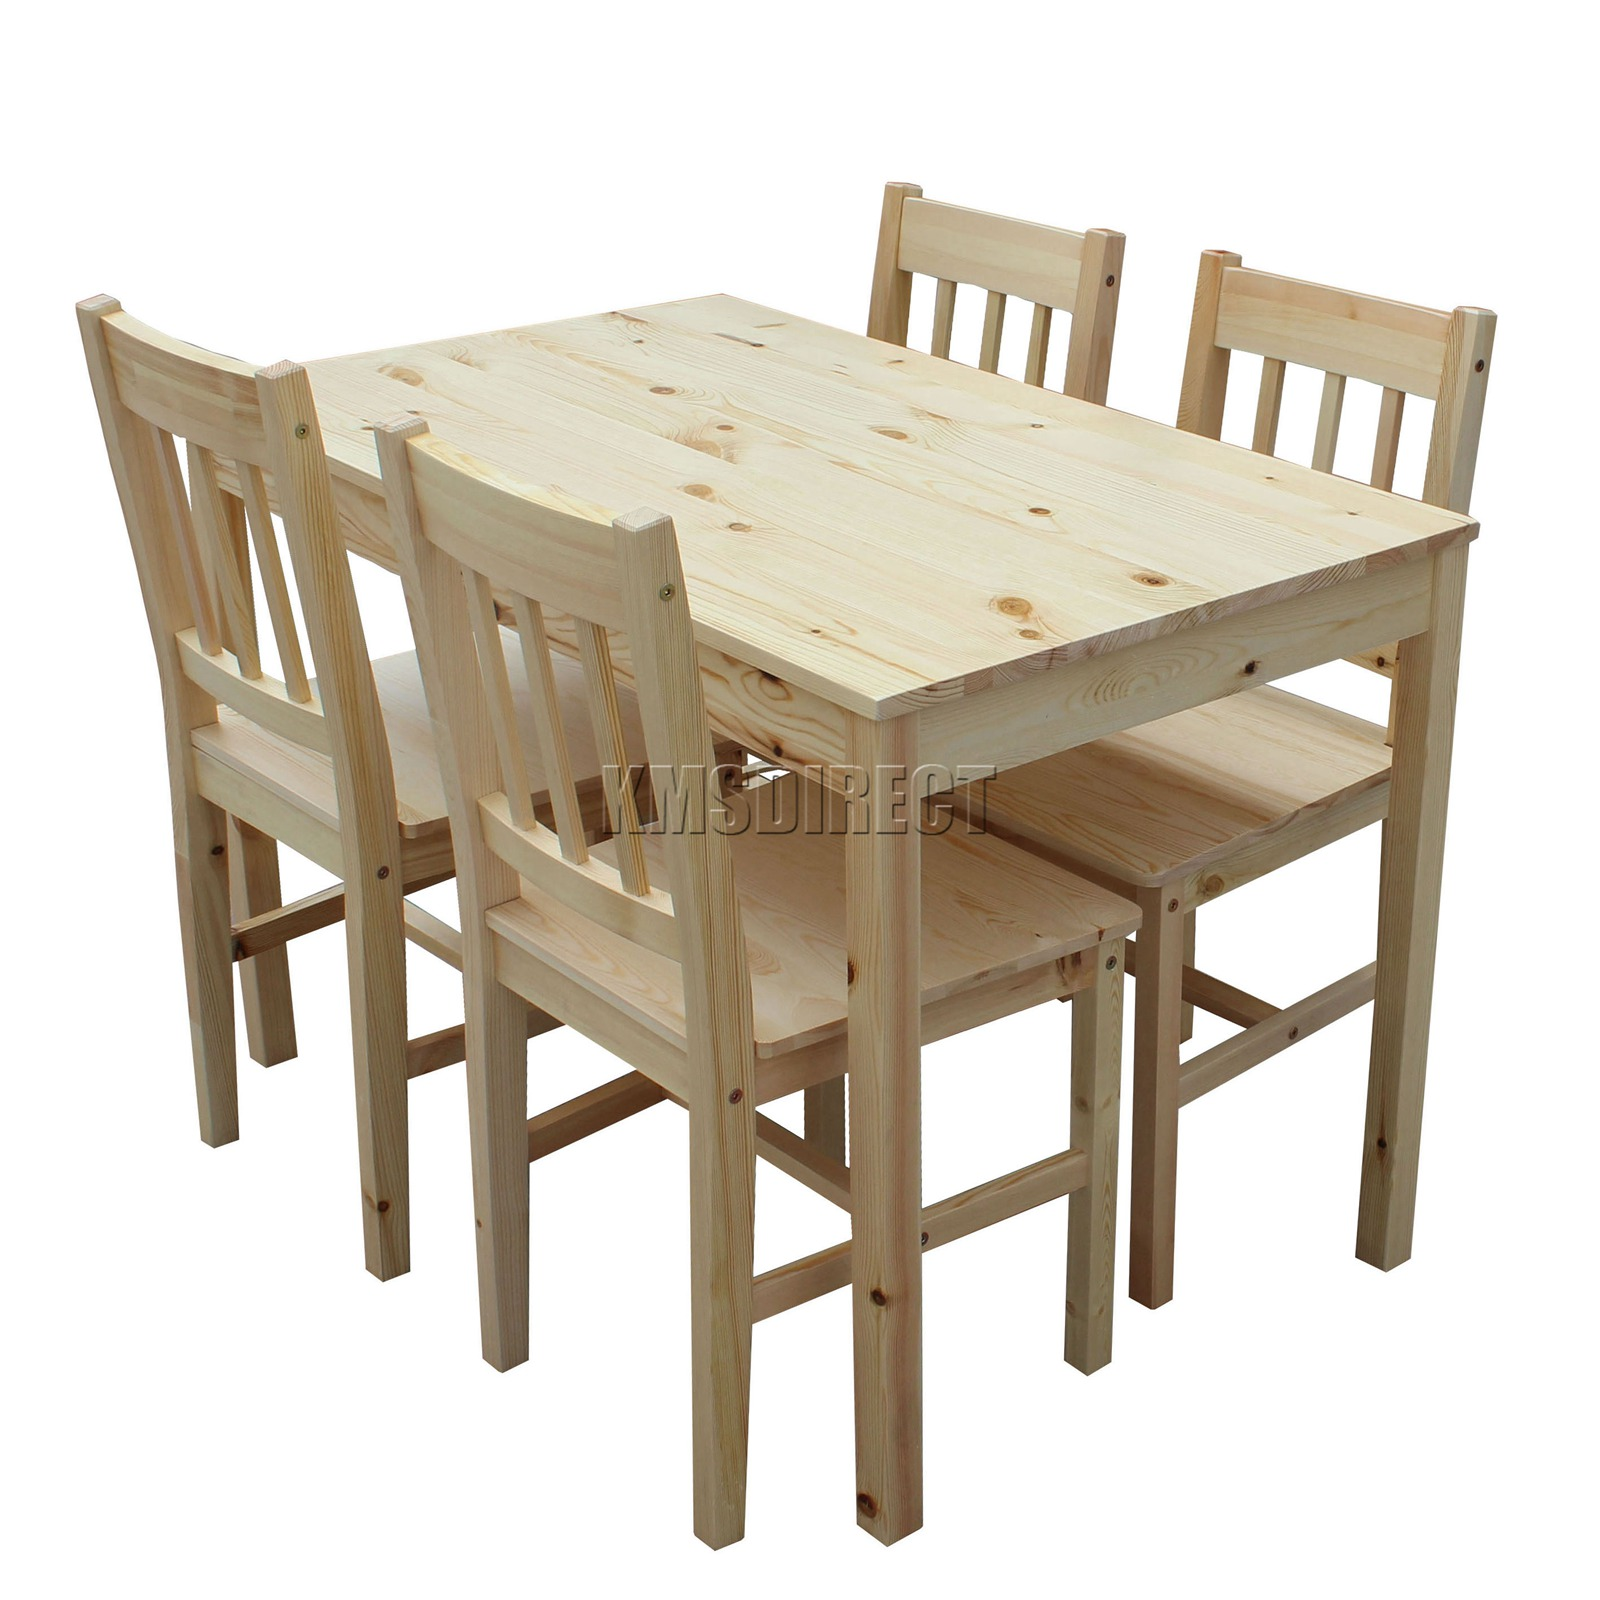 Dining Room Chairs Set Of 4 Details About Westwood Quality Solid Wooden Dining Table And 4 Chairs Set Kitchen Ds02 Pine